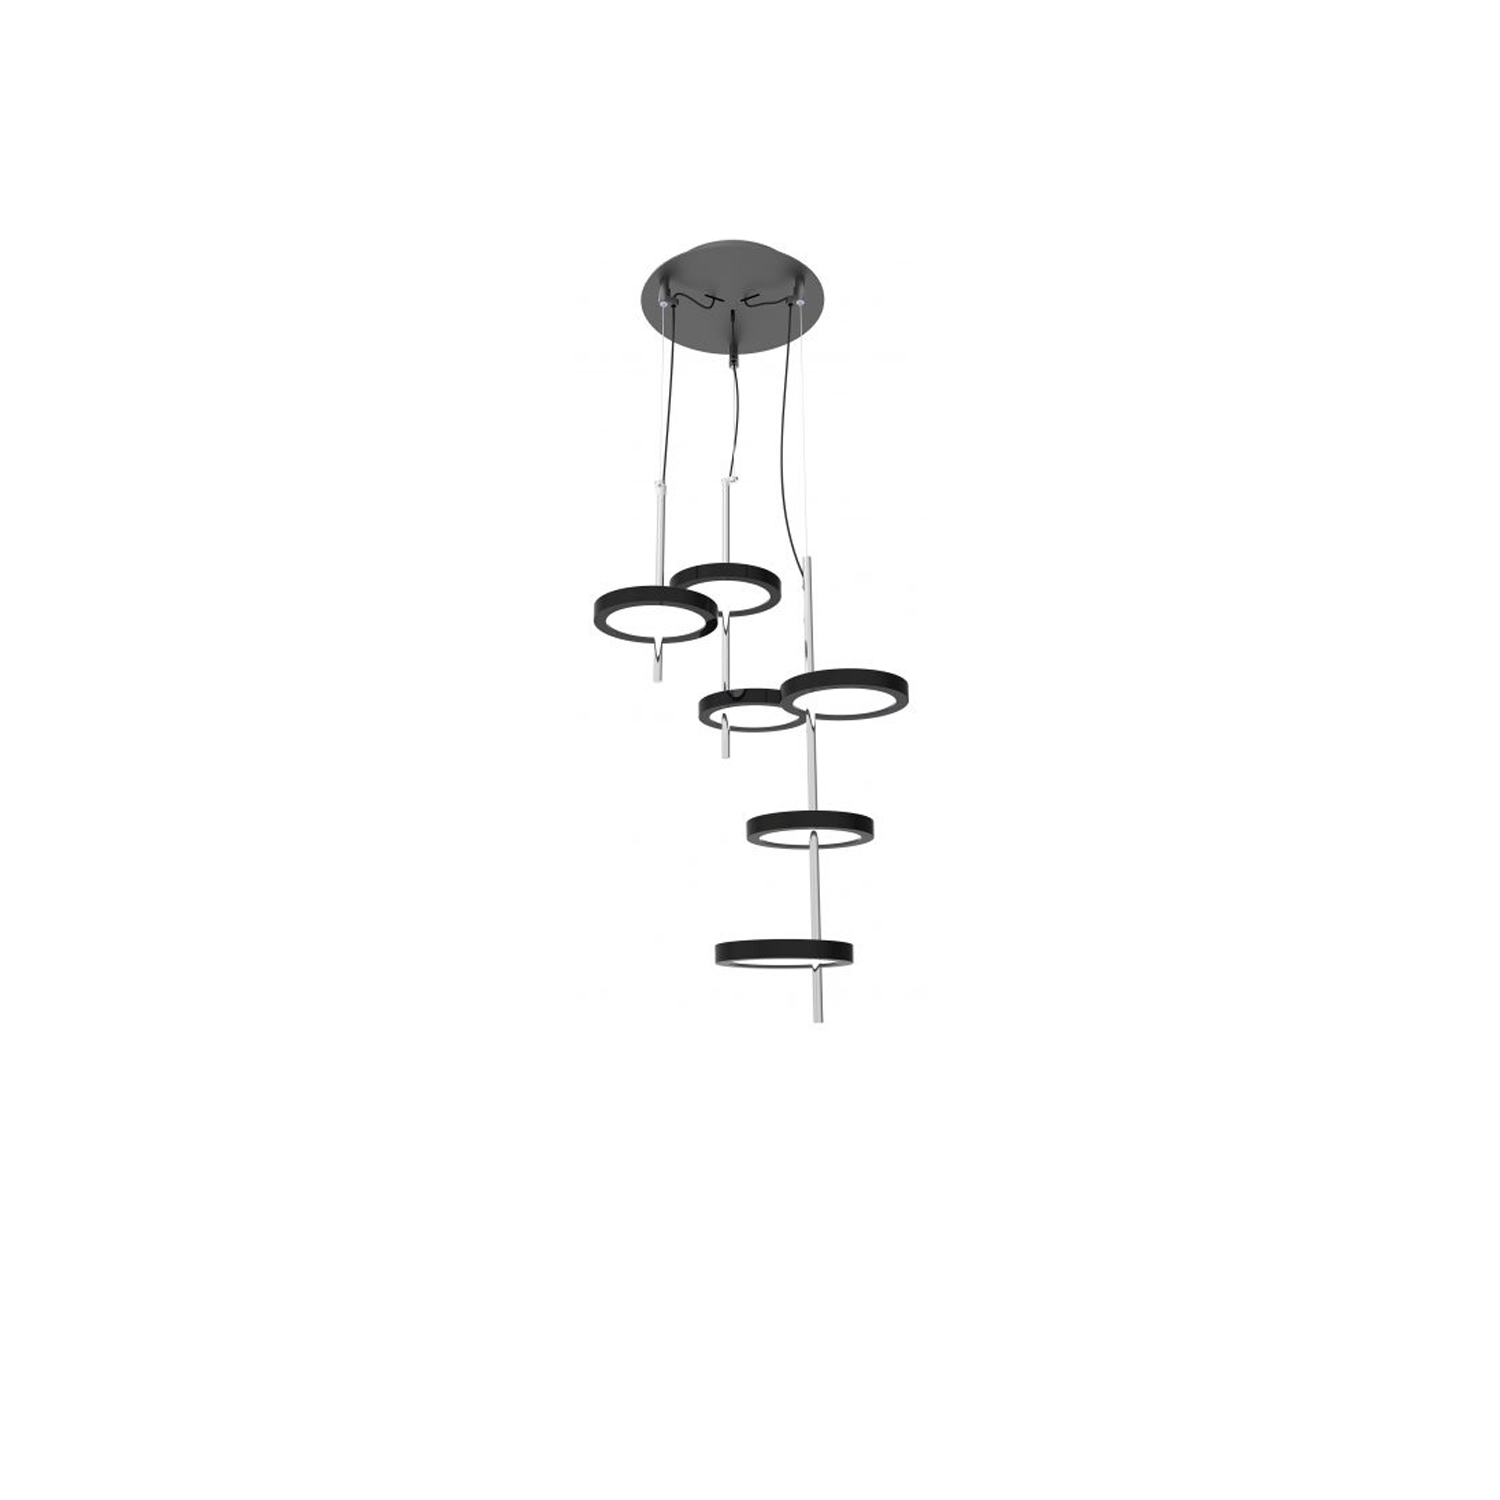 Nenúfar Pre-Set Pendant Light - The Nenúfar is a cluster of LED pendants, composed of several discs attached to a central stem. Each disc is distinct, separated from the others in a way that the downward beams do not intersect or interfere, but combine for a uniform, direct beam. The result is an item that is midway between decorative and architectural, and be applied to both purposes with ease. The outcome of the designer's arduous quest to create a fixture that seems to float on air, the Nenúfar takes its name and its delicate shape from the water lily. Sober and well finished, the Nenúfar utilizes top-quality materials and the power of LED to radiate an exquisite luminosity and create warm, welcoming atmospheres.  This fixture is in its element installed in a series—creating areas lit at different heights and with various combinations of discs—or on its own as a surprising, well balanced and subdued centerpiece. Choose from one, two, or three black discs supported by a polished chrome stem.  This fixture is available in pre-set configurations of 3, 5, 7, and 9 units, to ease installation. Please enquire for more information and prices | Matter of Stuff